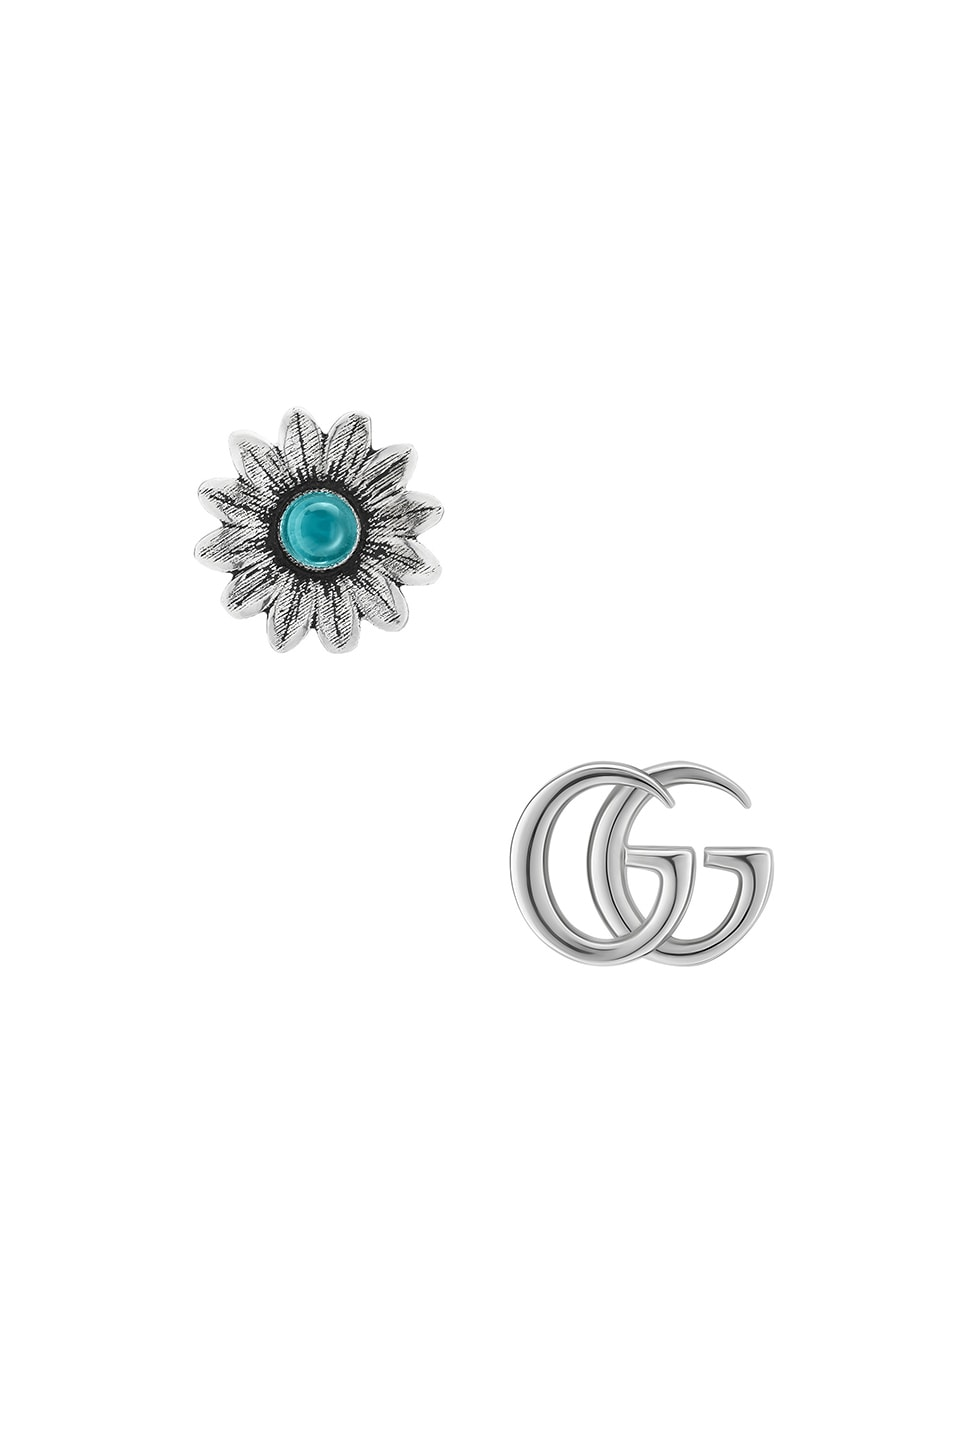 8bd9f70b2f5 Image 1 of Gucci GG Marmont Mismatched Stud Earrings in Sterling Silver    Topaz